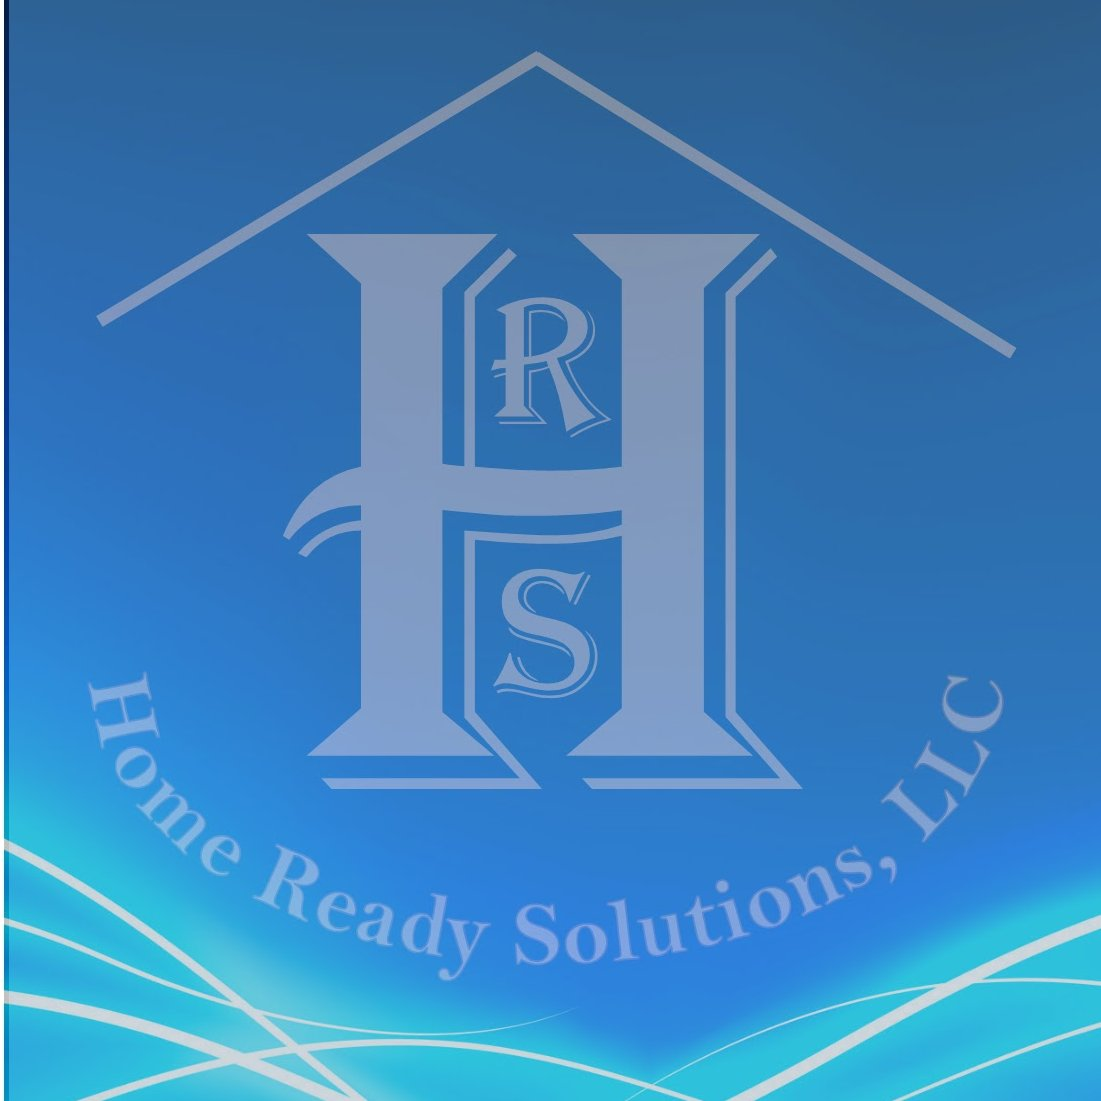 Home Ready Solutions, LLC